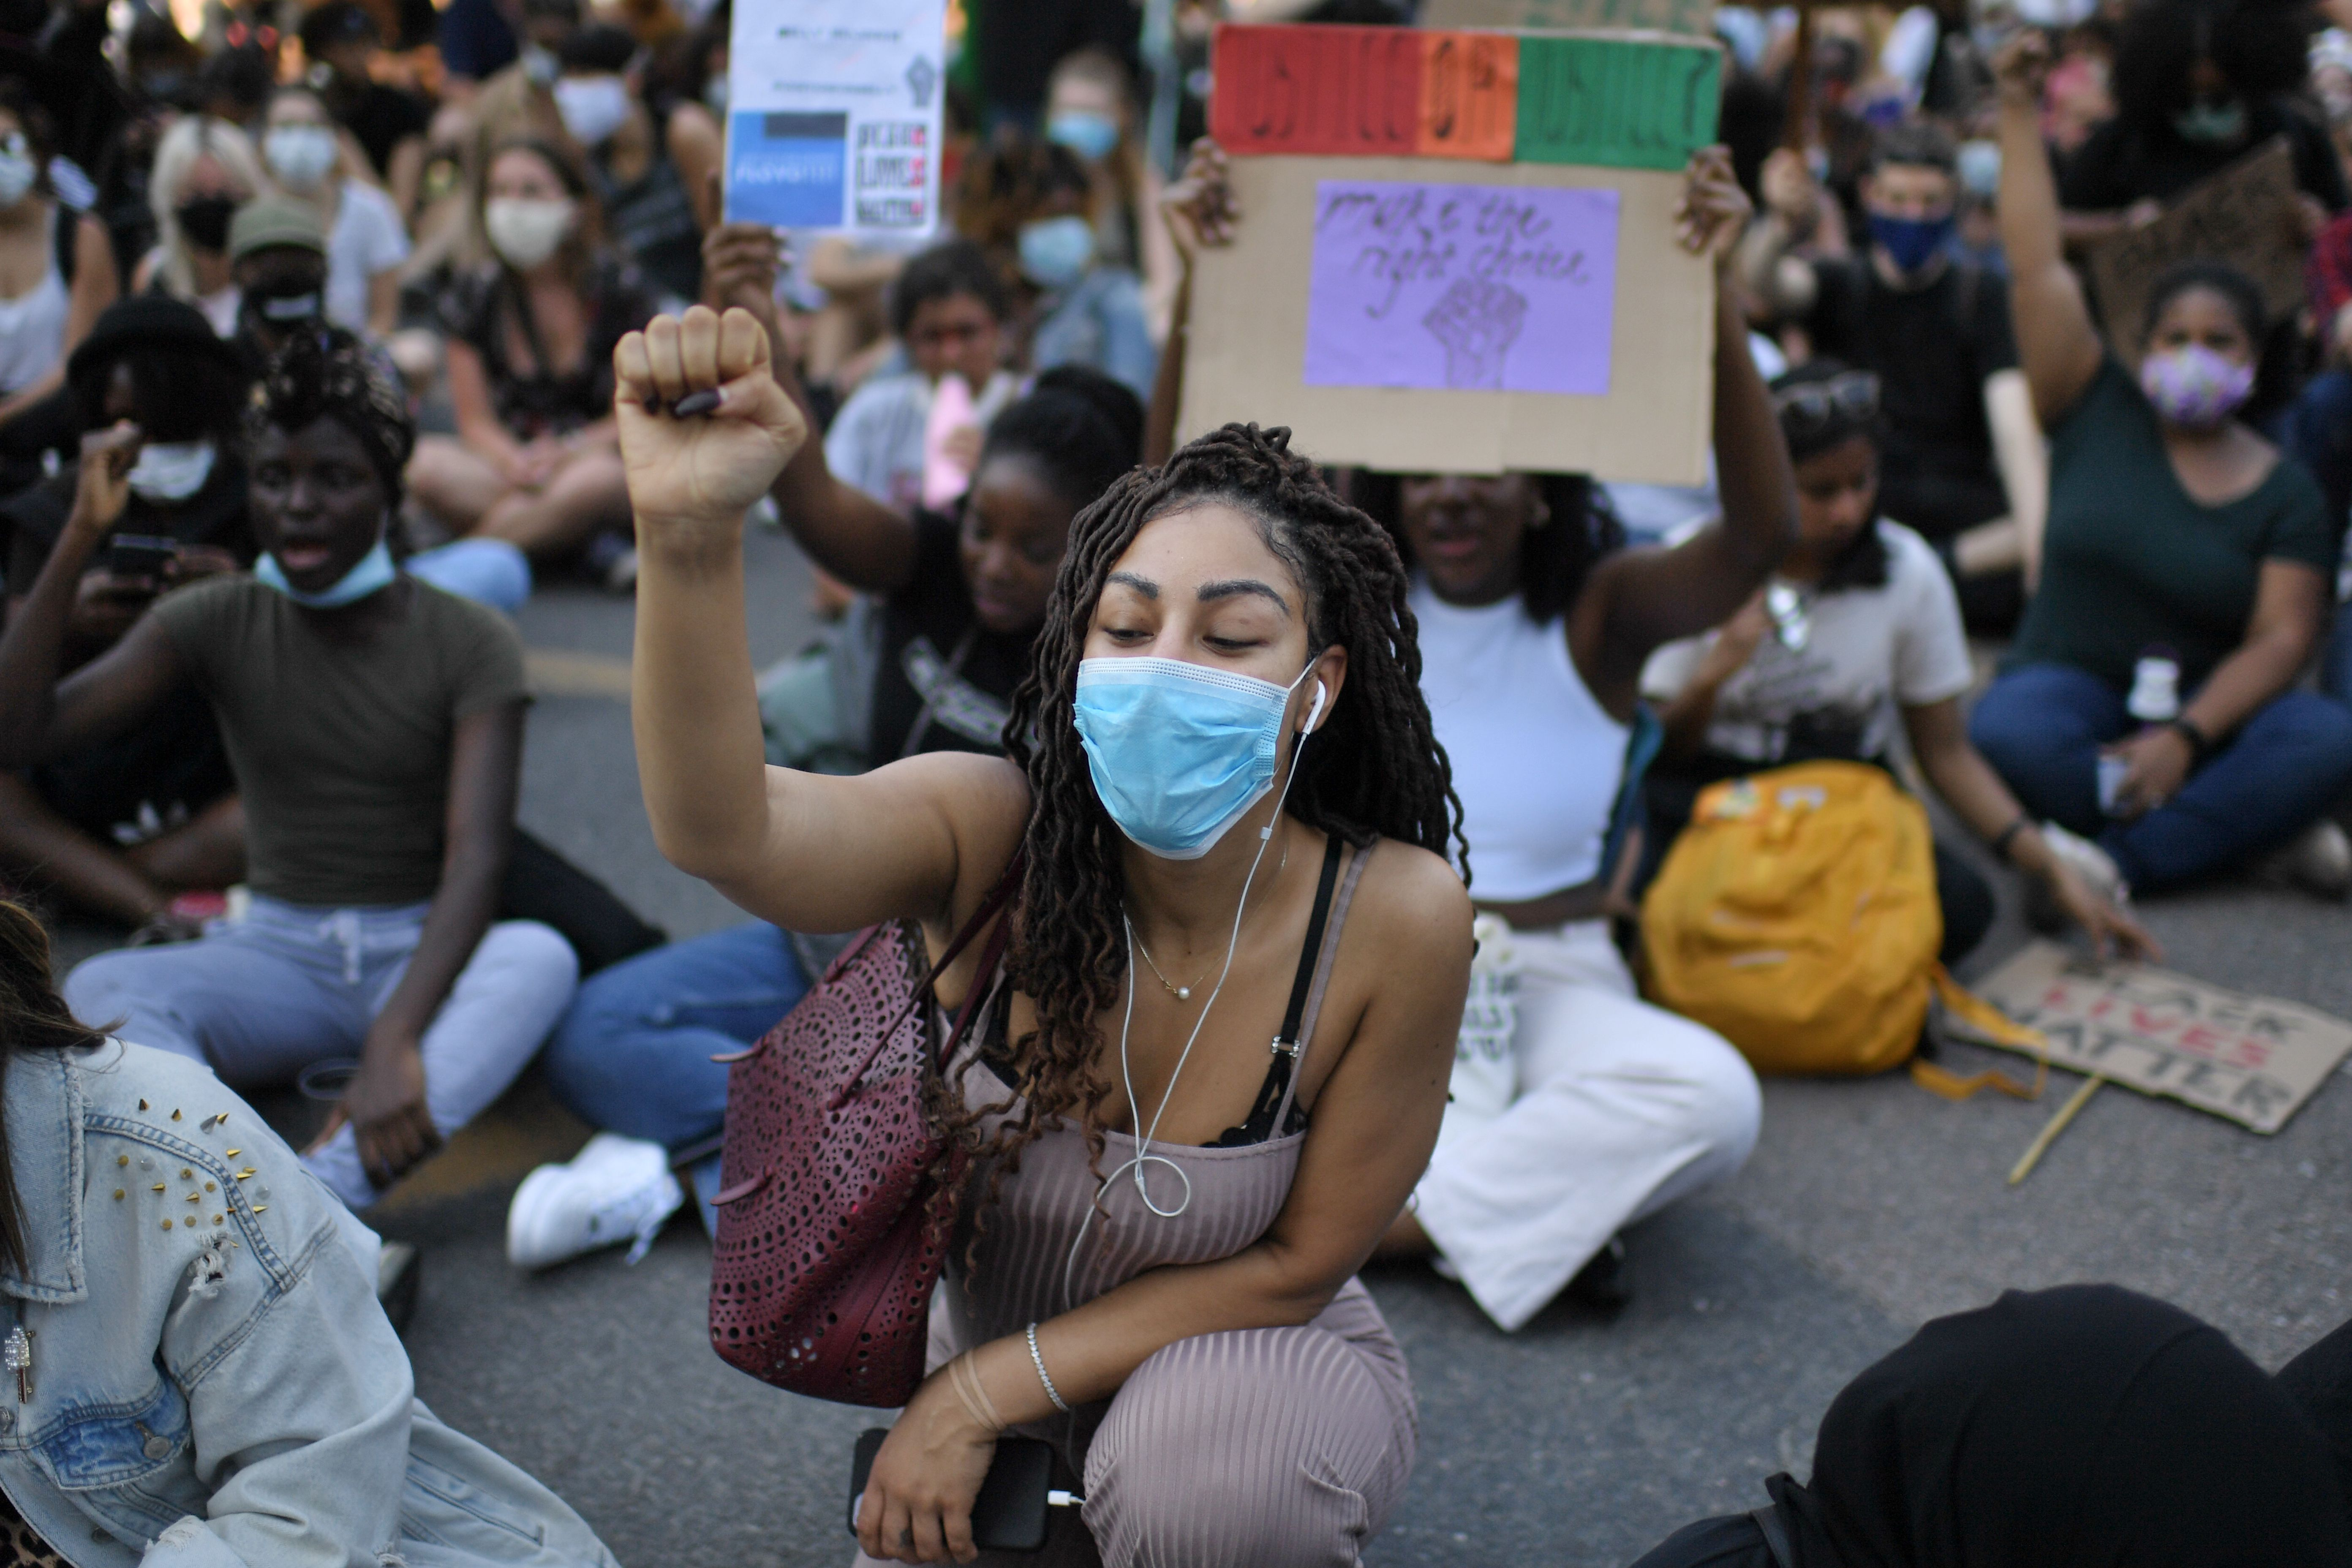 Demonstrators sit down in the road outside the US Embassy in London on May 31, 2020 to protest the death of George Floyd, an unarmed black man who died after a police officer knelt on his neck for nearly nine minutes during an arrest in Minneapolis, USA. - Hundreds gathered in central London and marched to teh US Embassy to protest the death of an unarmed black man in Minneapolis while in police custody that has sparked days of unrest in the US city and beyond. (Photo by DANIEL LEAL-OLIVAS / AFP) / The erroneous mention[s] appearing in the metadata of this photo by DANIEL LEAL-OLIVAS has been modified in AFP systems in the following manner: [London] instead of [Brighton]. Please immediately remove the erroneous mention[s] from all your online services and delete it (them) from your servers. If you have been authorized by AFP to distribute it (them) to third parties, please ensure that the same actions are carried out by them. Failure to promptly comply with these instructions will entail liability on your part for any continued or post notification usage. Therefore we thank you very much for all your attention and prompt action. We are sorry for the inconvenience this notification may cause and remain at your disposal for any further information you may require. (Photo by DANIEL LEAL-OLIVAS/AFP via Getty Images)